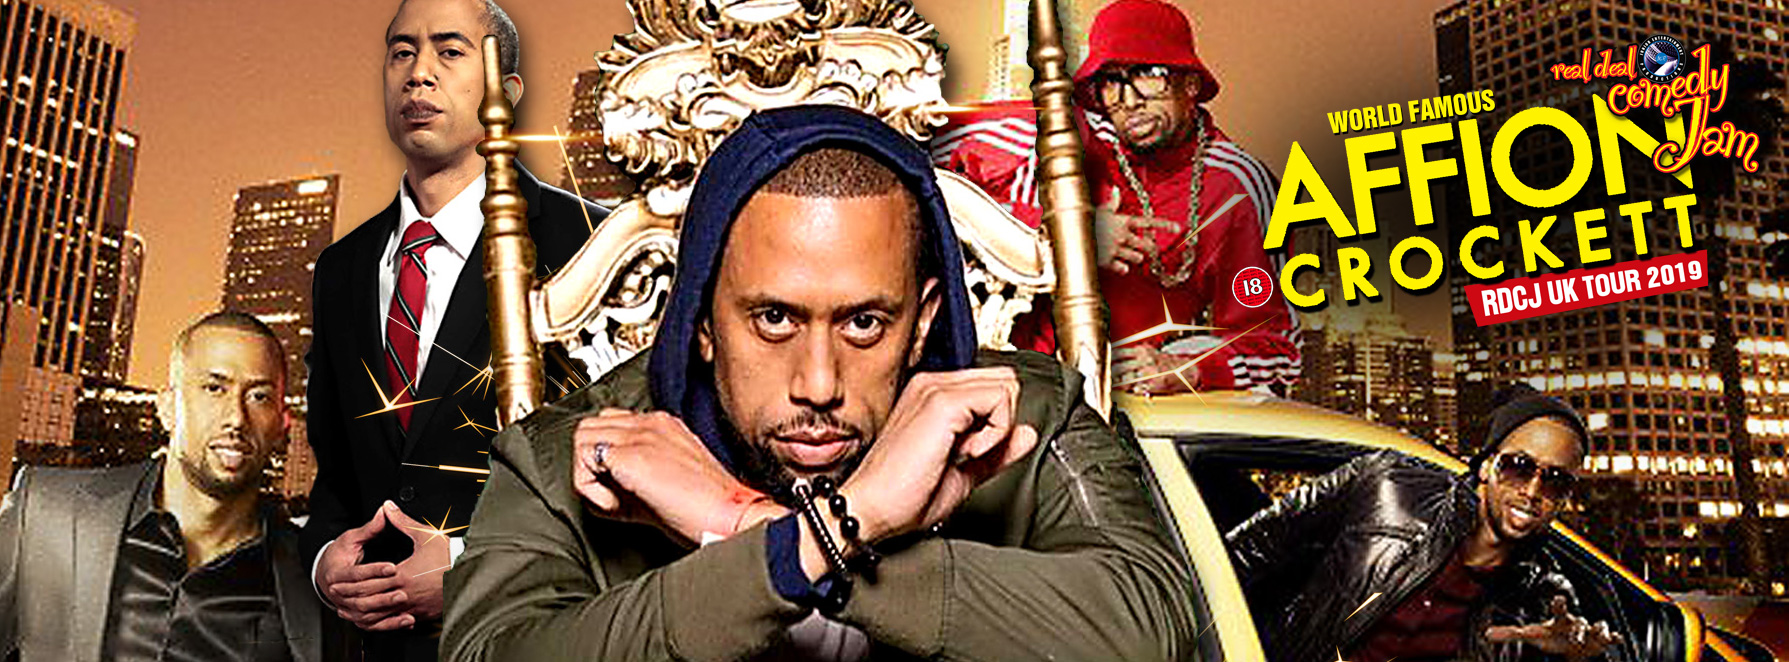 Affion Crockett, Wild N Out, Kevin Hart, UK tour, comedy tour